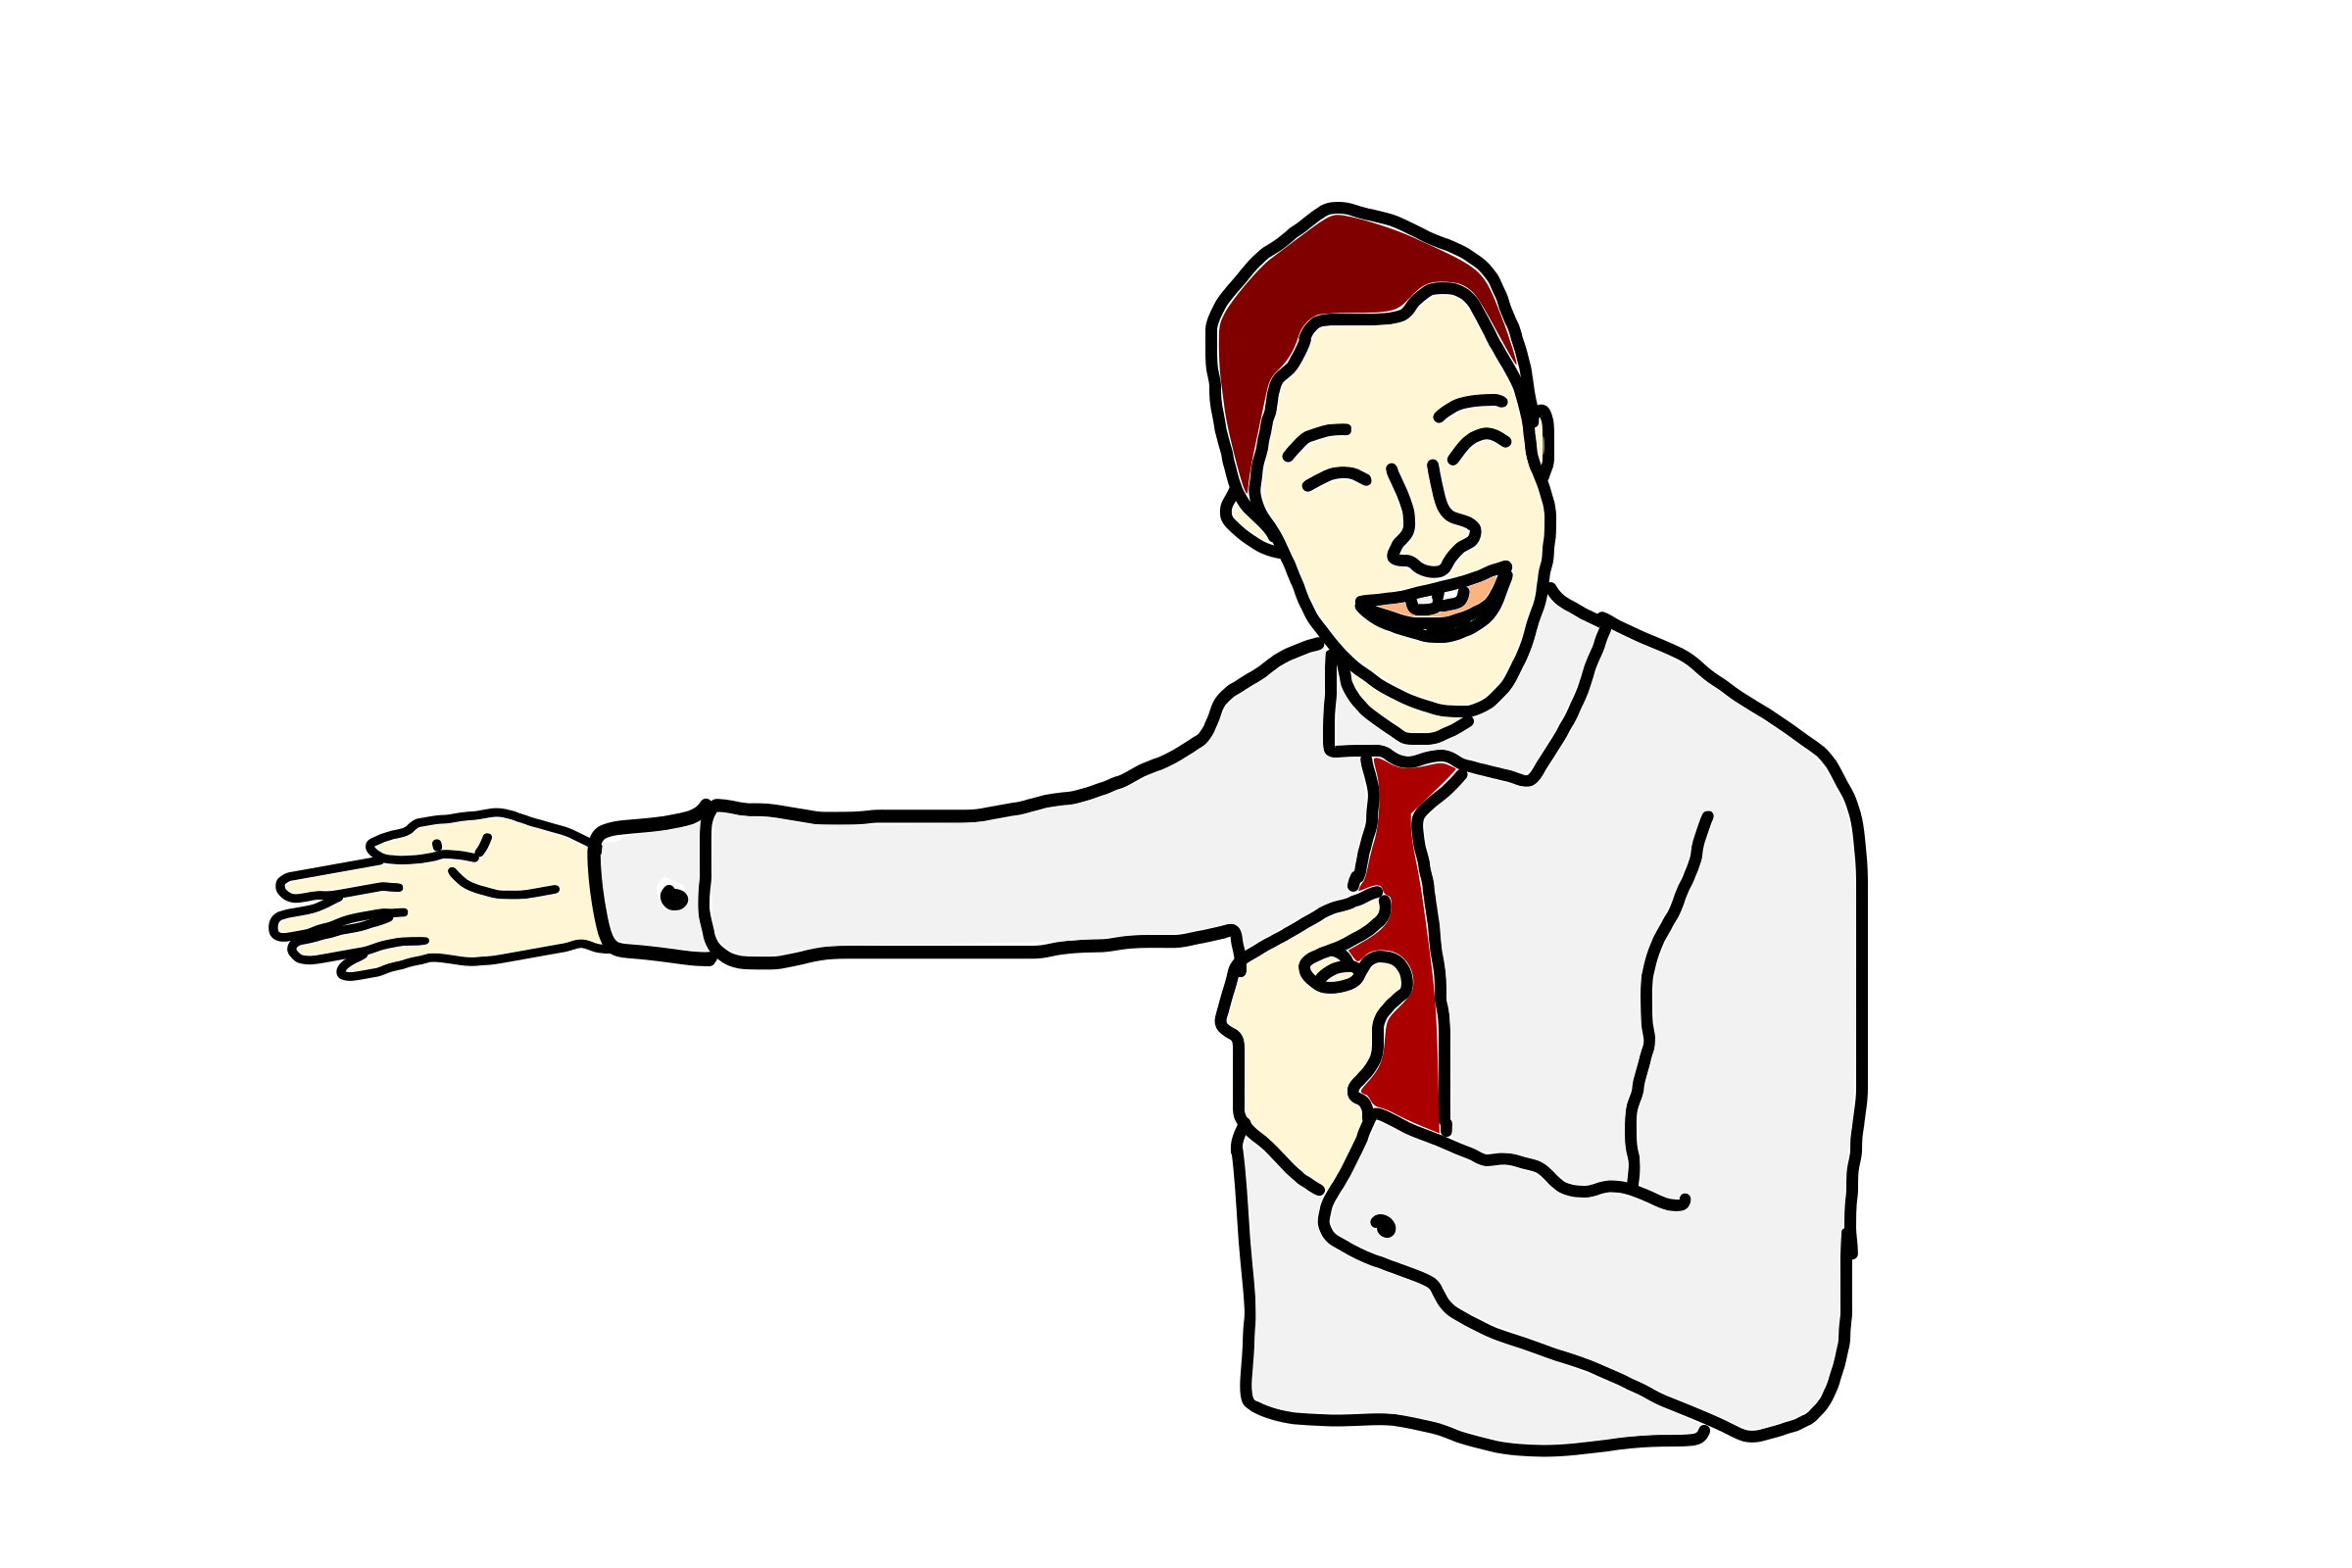 Self clarification clipart graphic freeuse library Person Pointing At Himself PNG Transparent Person Pointing At ... graphic freeuse library